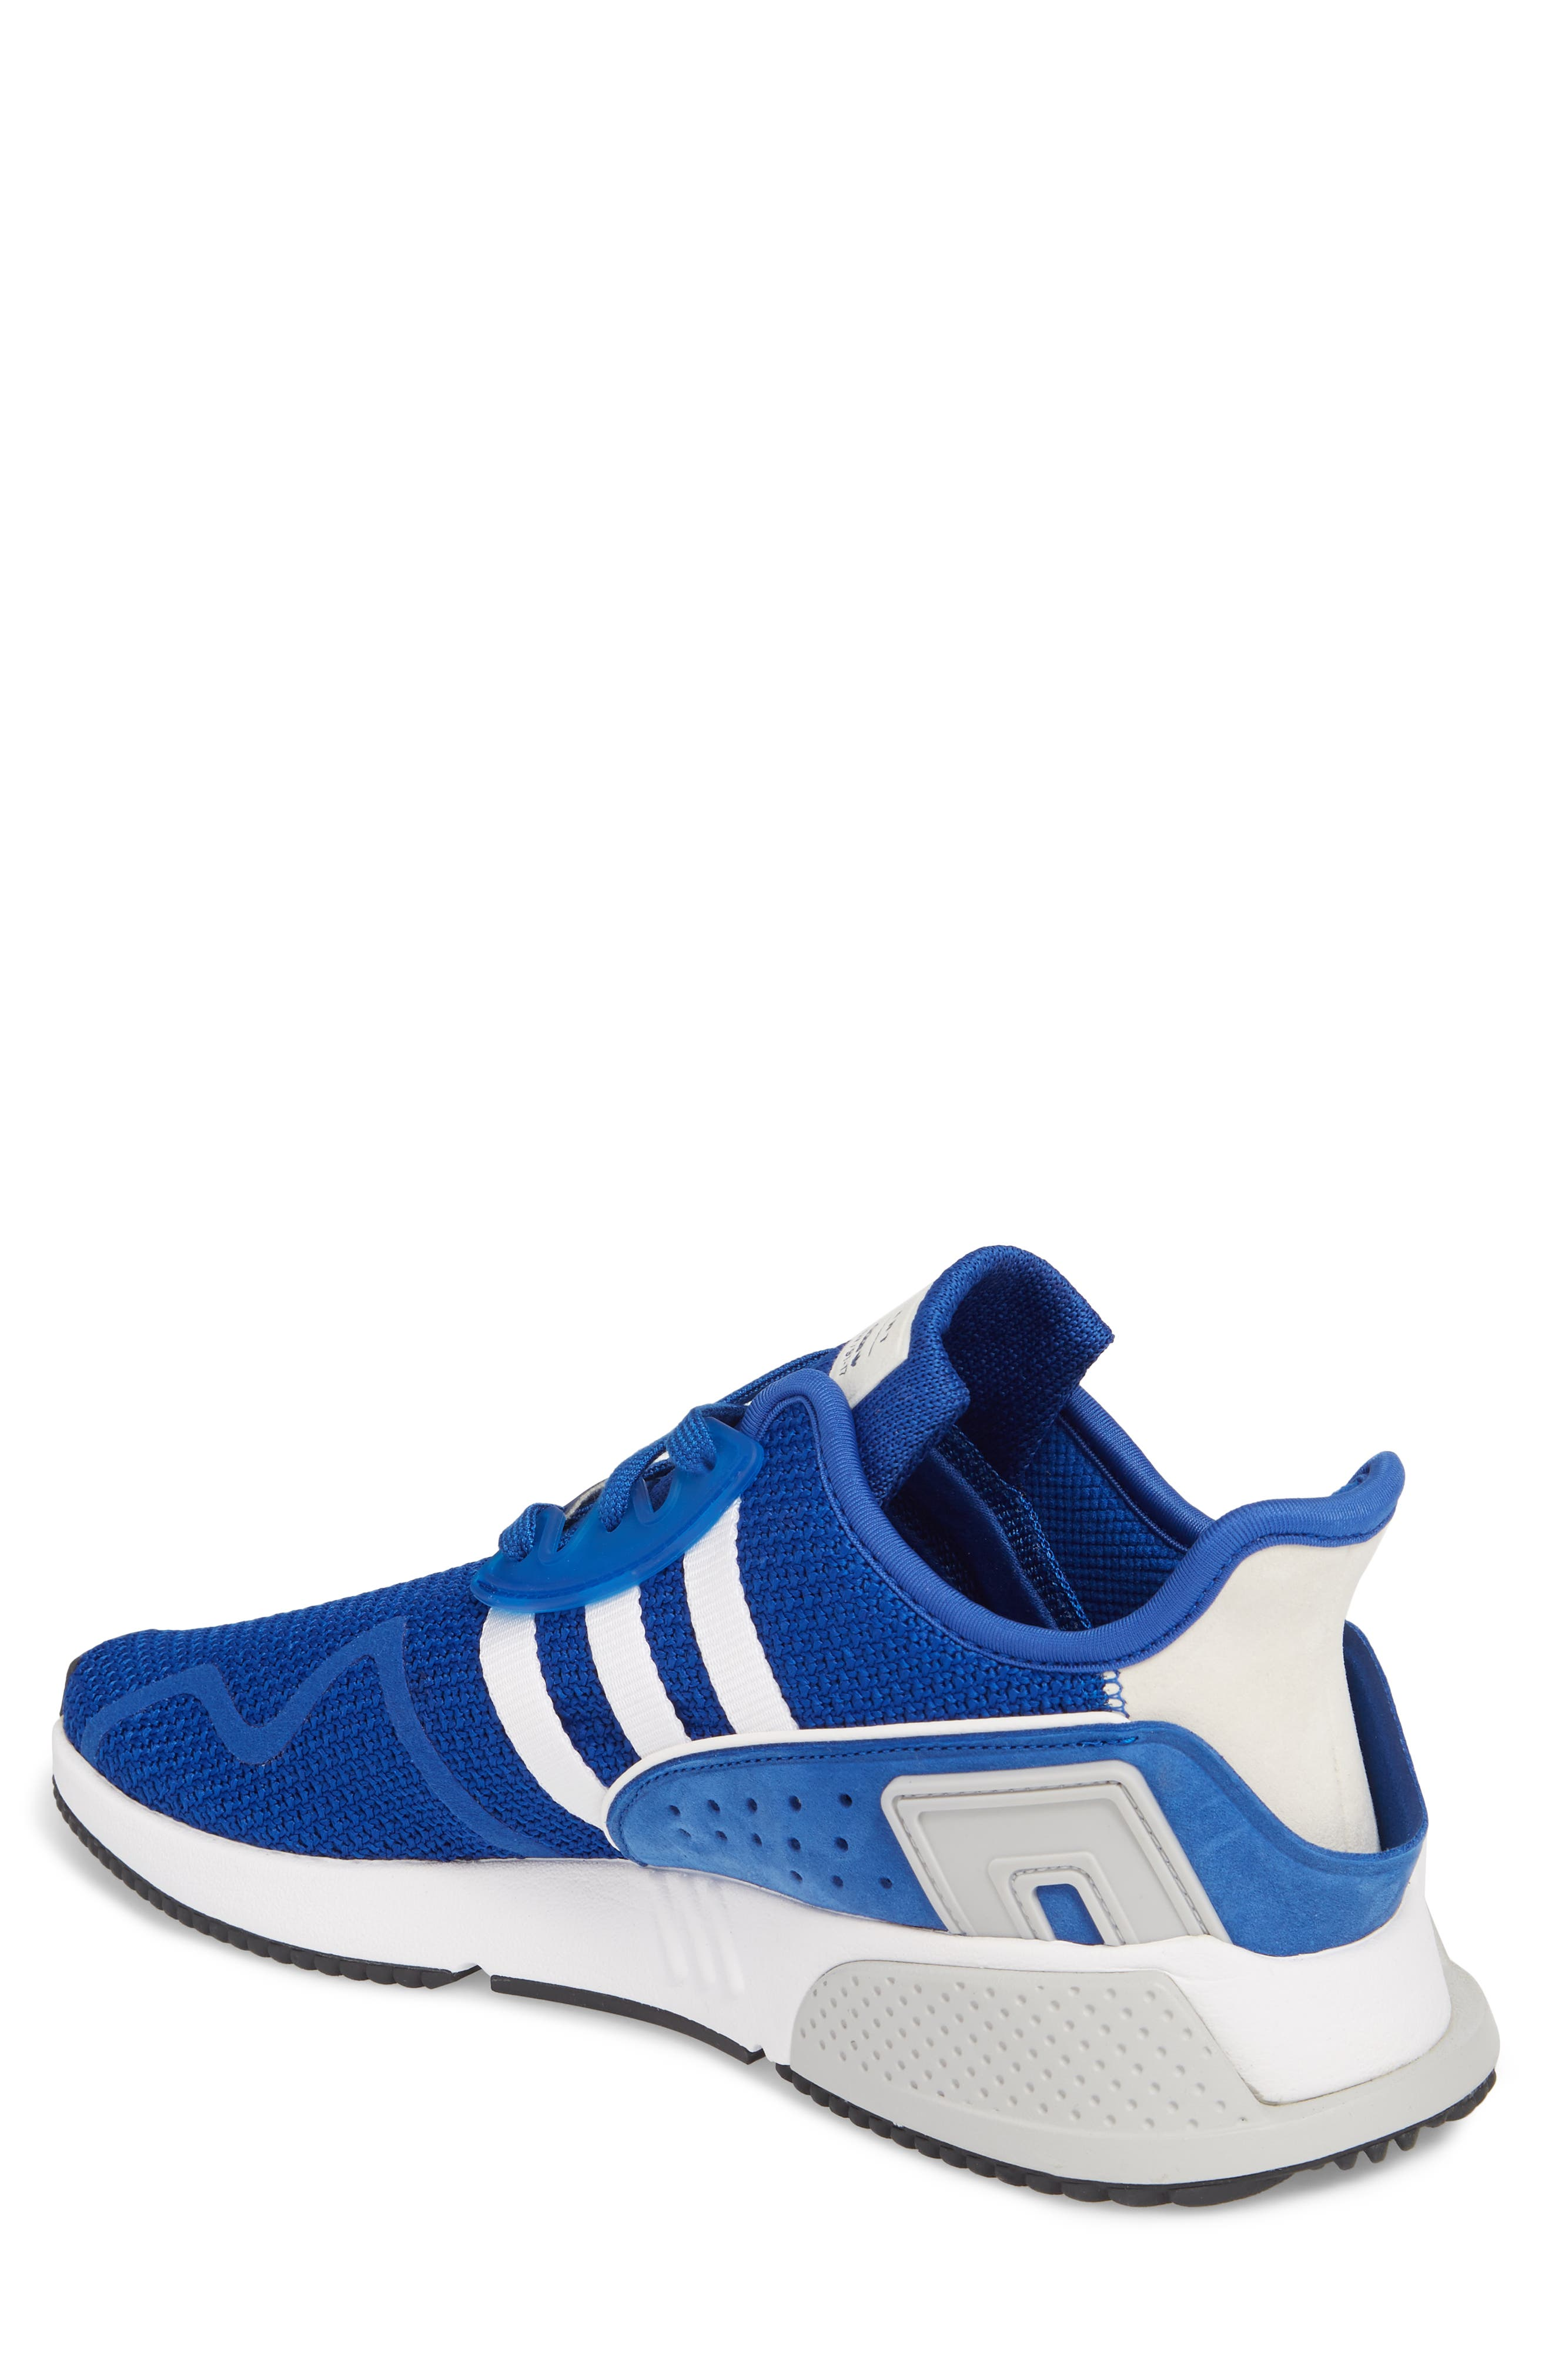 EQT Cushion ADV Sneaker,                             Alternate thumbnail 2, color,                             Royal/ Crystal White